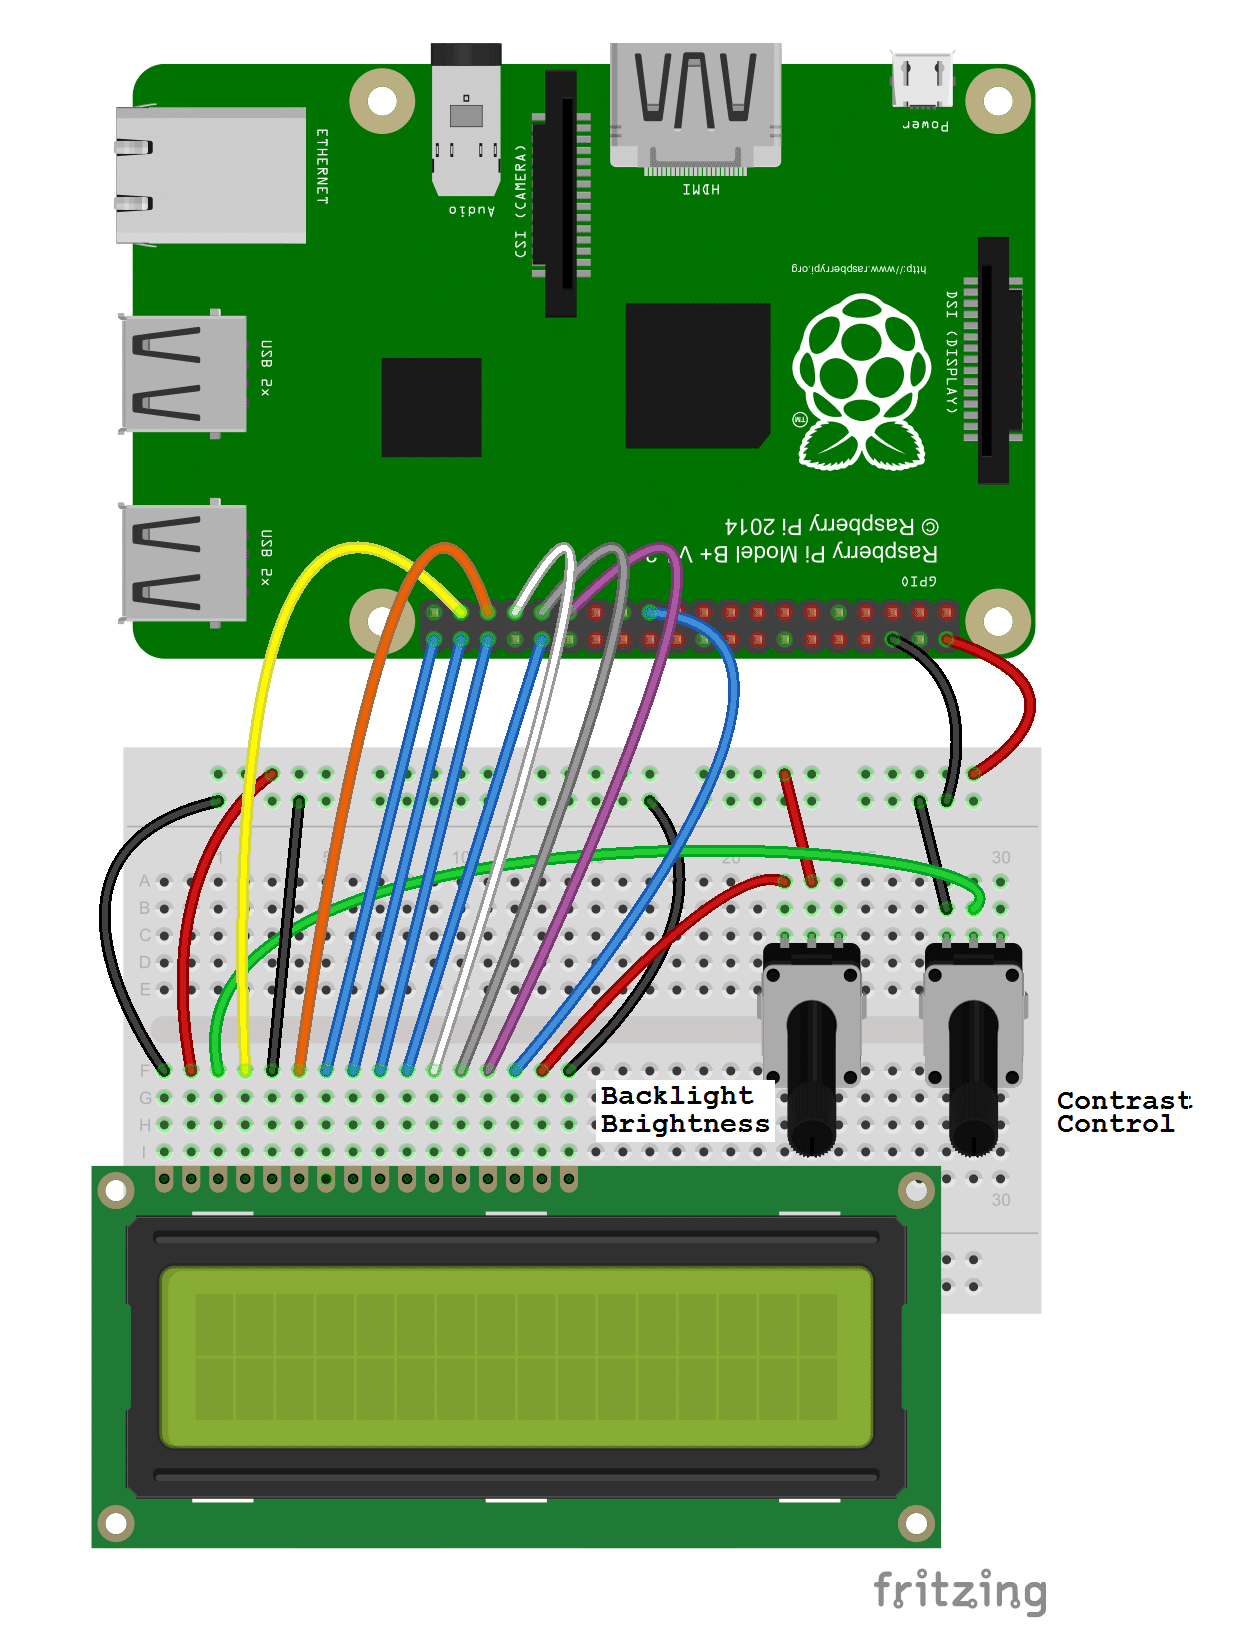 How To Setup An Lcd On The Raspberry Pi And Program It With Python Led Display Panel Wiring Diagram 8 Bit Mode Connection